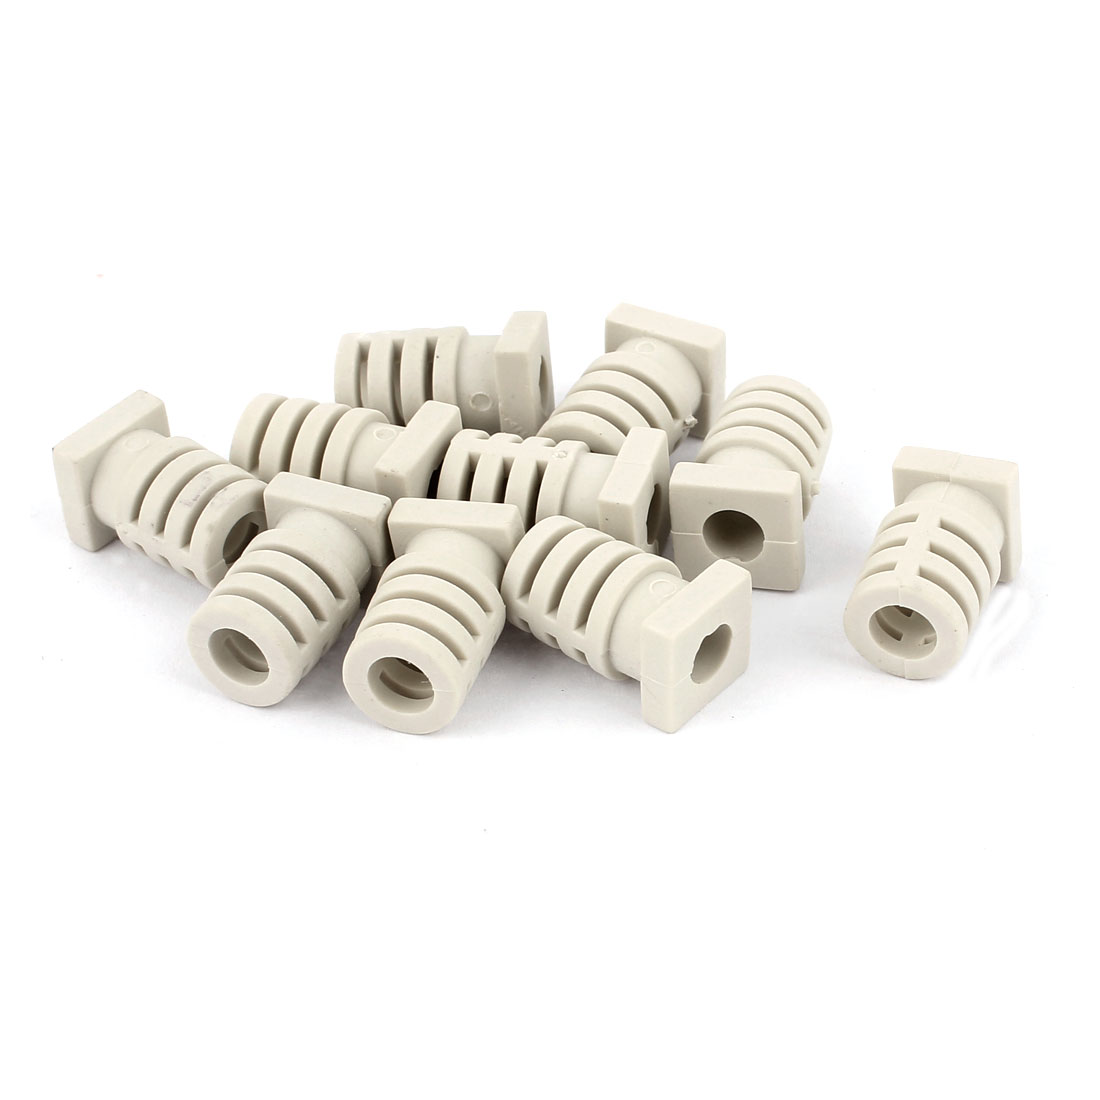 10pcs 5.7mm Inner Dia Rubber Strain Relief Cord Boot Protector Cable Sleeve Hose Gray